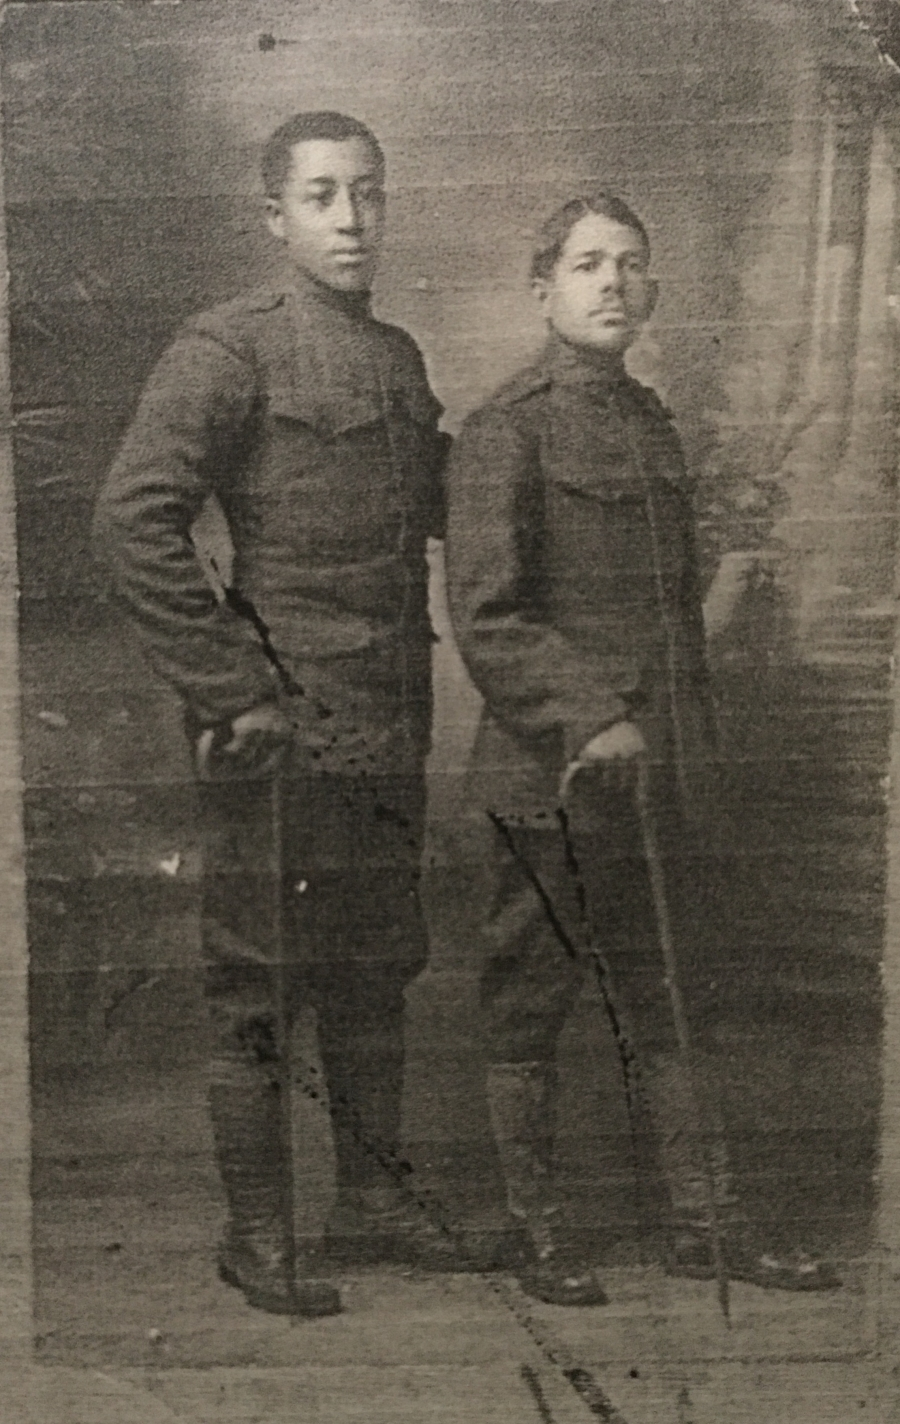 Cpl. Jesse Moore, right, was among the 13 soldiers hanged.